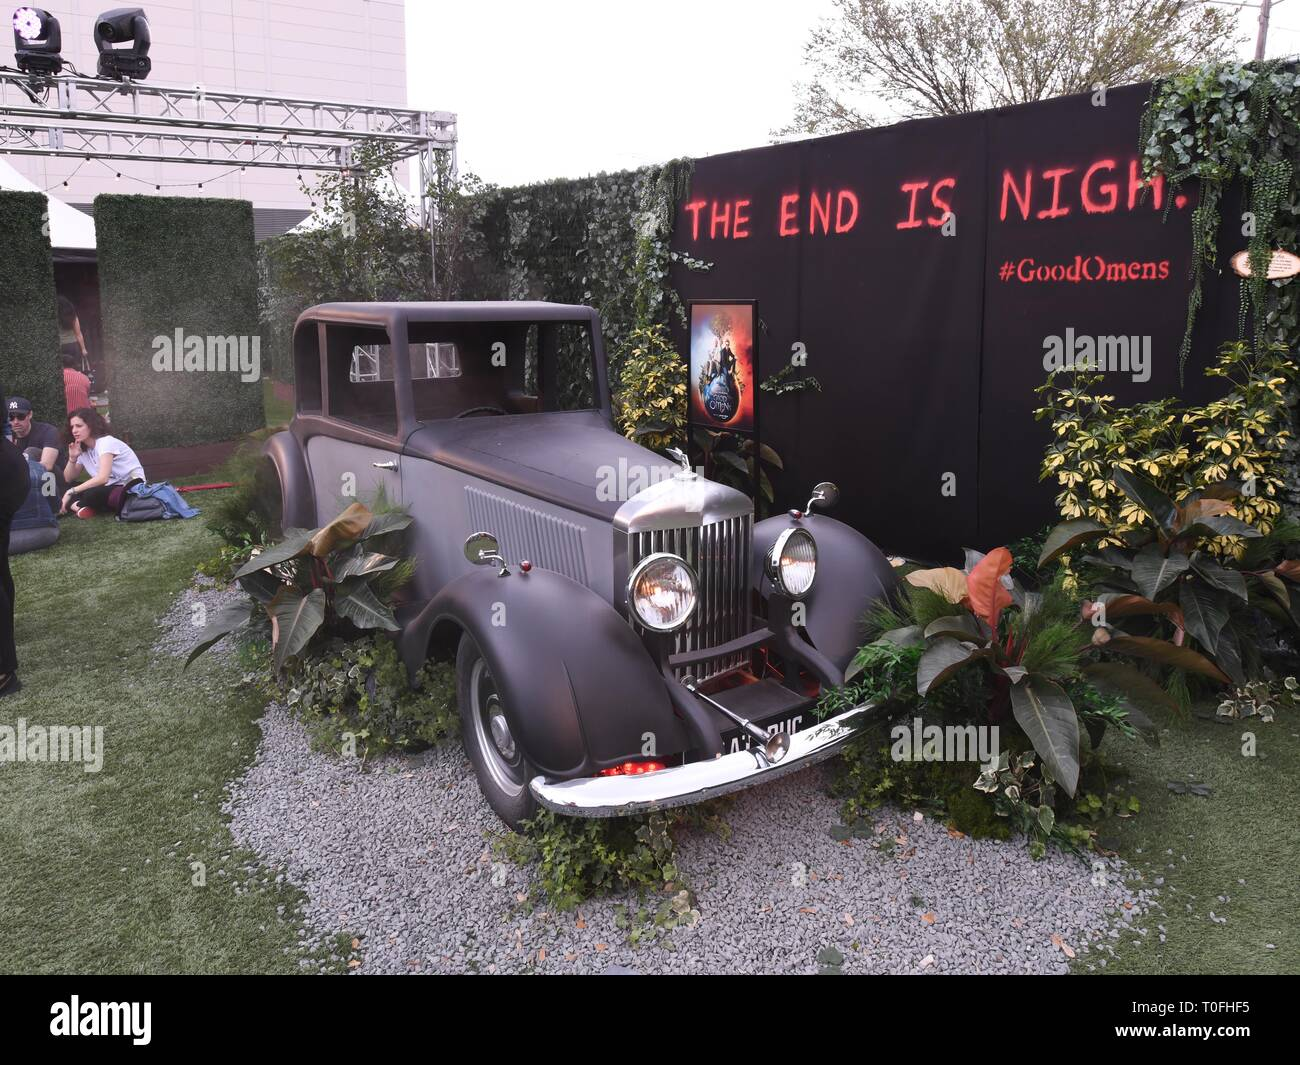 March 10, 2019 - View of Amazon Prime Video's 'Good Omens Garden of Earthly Delights' activation, Day 3, at the SXSW trade show during the 2019 SXSW Conference and Festivals in Austin, Texas. Credit: Billy Bennight/ZUMA Wire/Alamy Live News - Stock Image